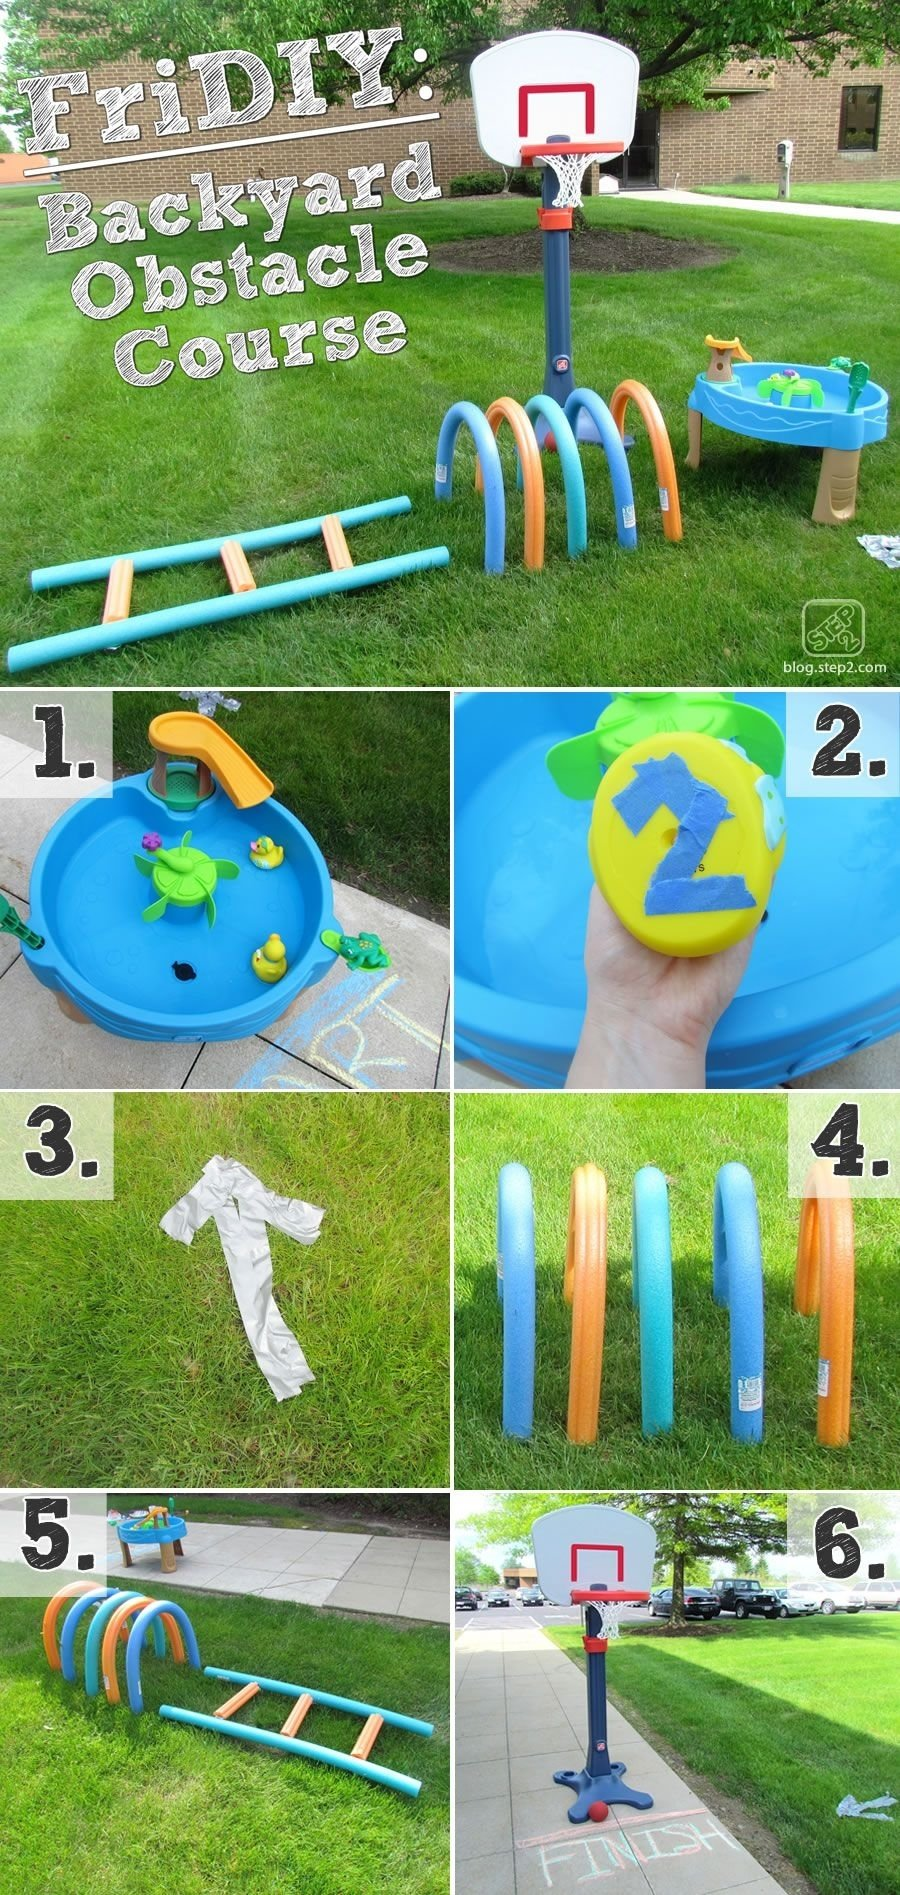 10 Fantastic Fun Obstacle Course Ideas For Adults backyard obstacle course backyard obstacle course obstacle course 2020